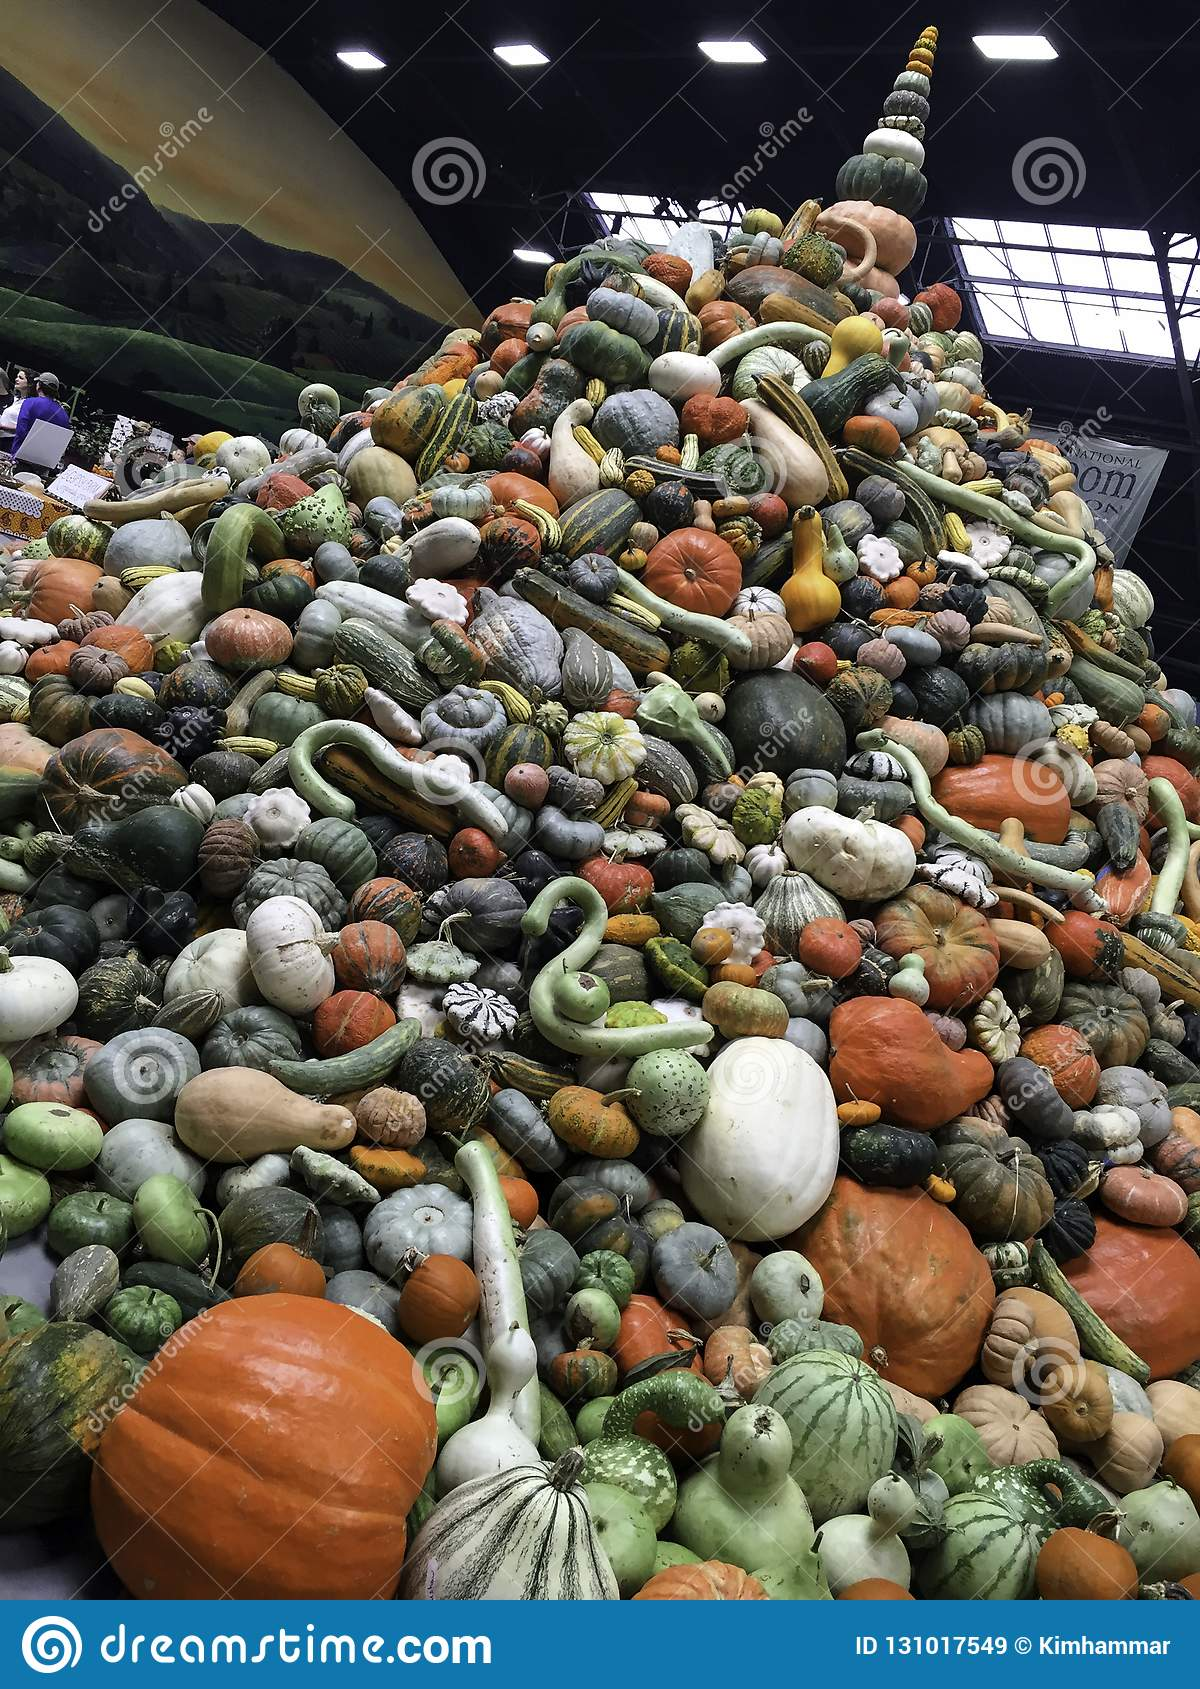 A stacked pile of squash and pumpkins at the 2017 National Heirloom Expo in Santa Rosa, CA